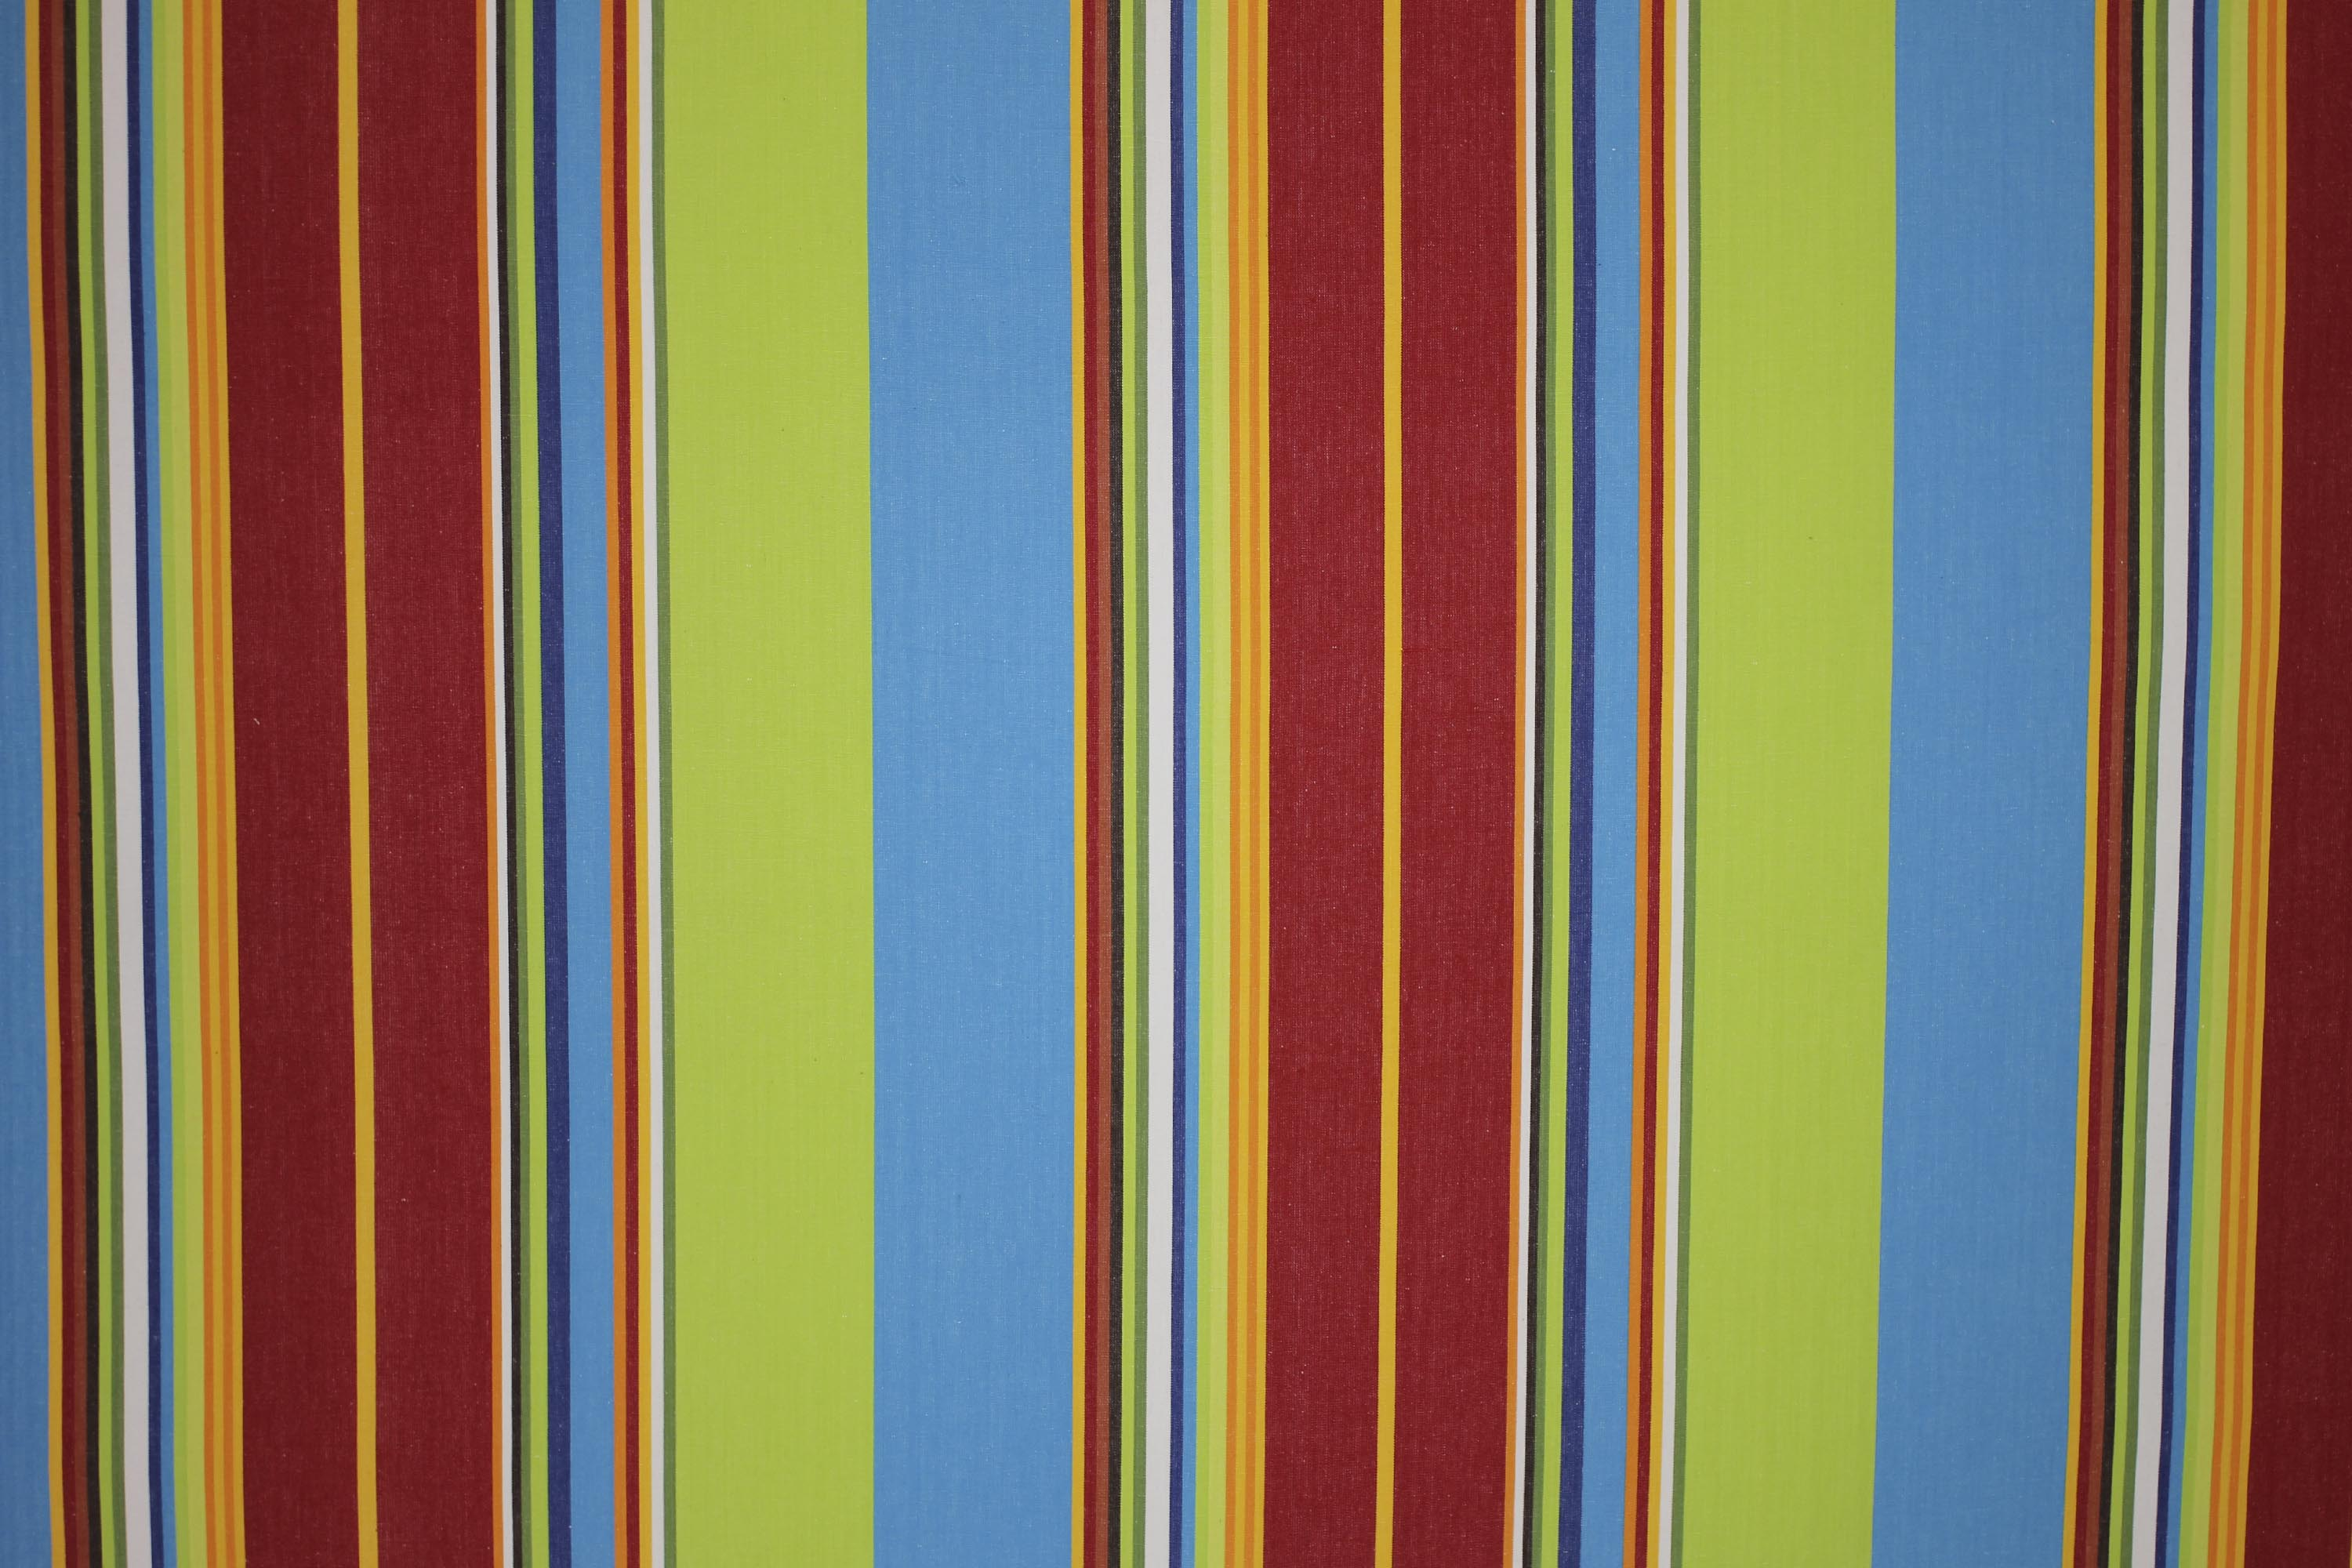 Lime Striped Fabrics | Stripe Cotton Fabrics | Striped Curtain Fabrics | Upholstery Fabrics  Grand Prix Stripes